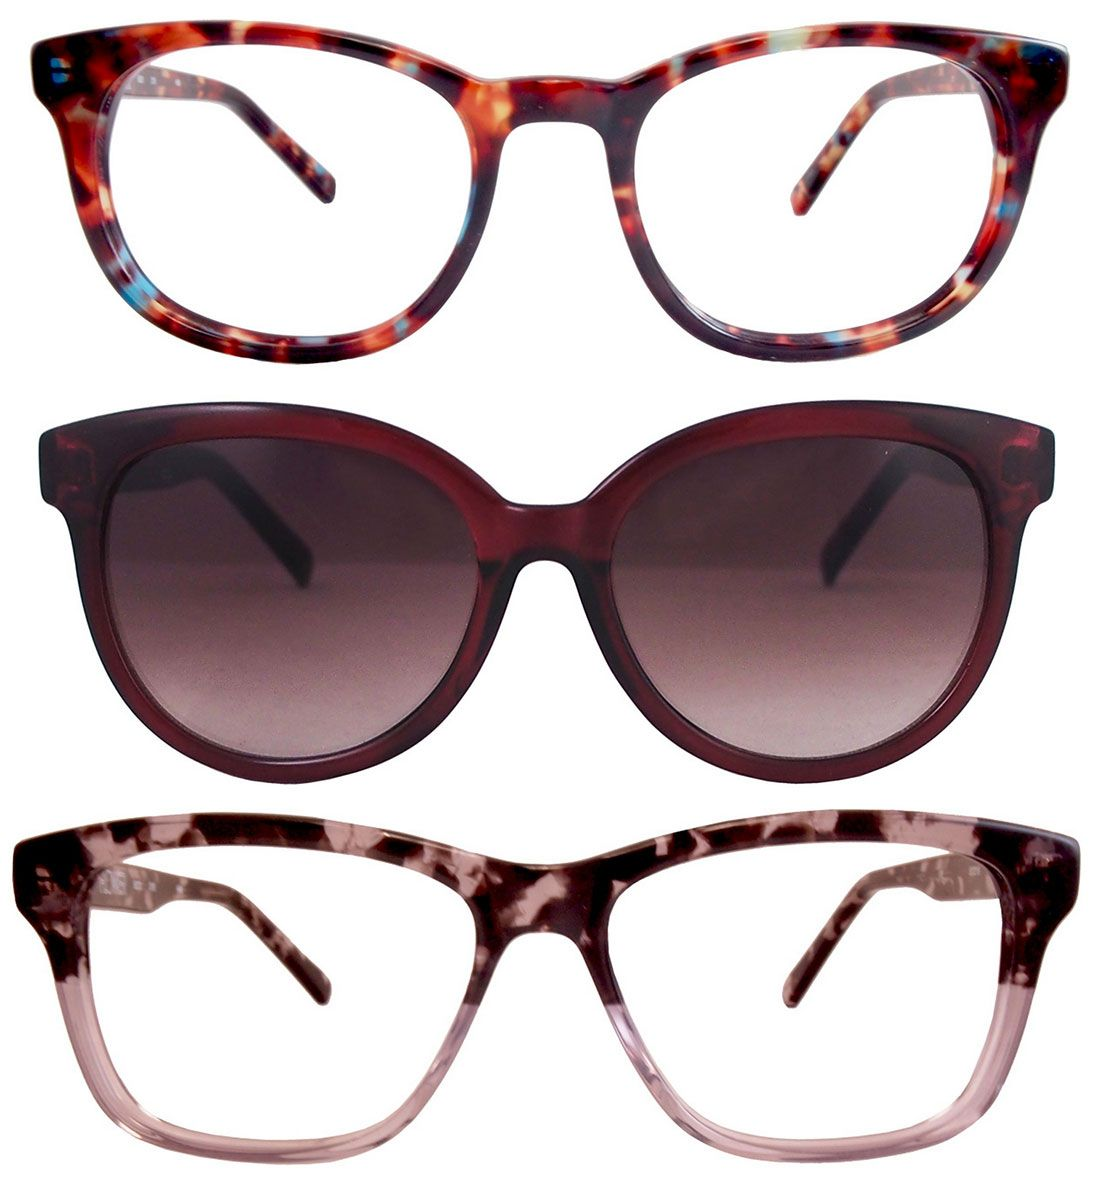 Drew Barrymore Just Launched a Gorgeous Eyewear Line | Eyewear ...